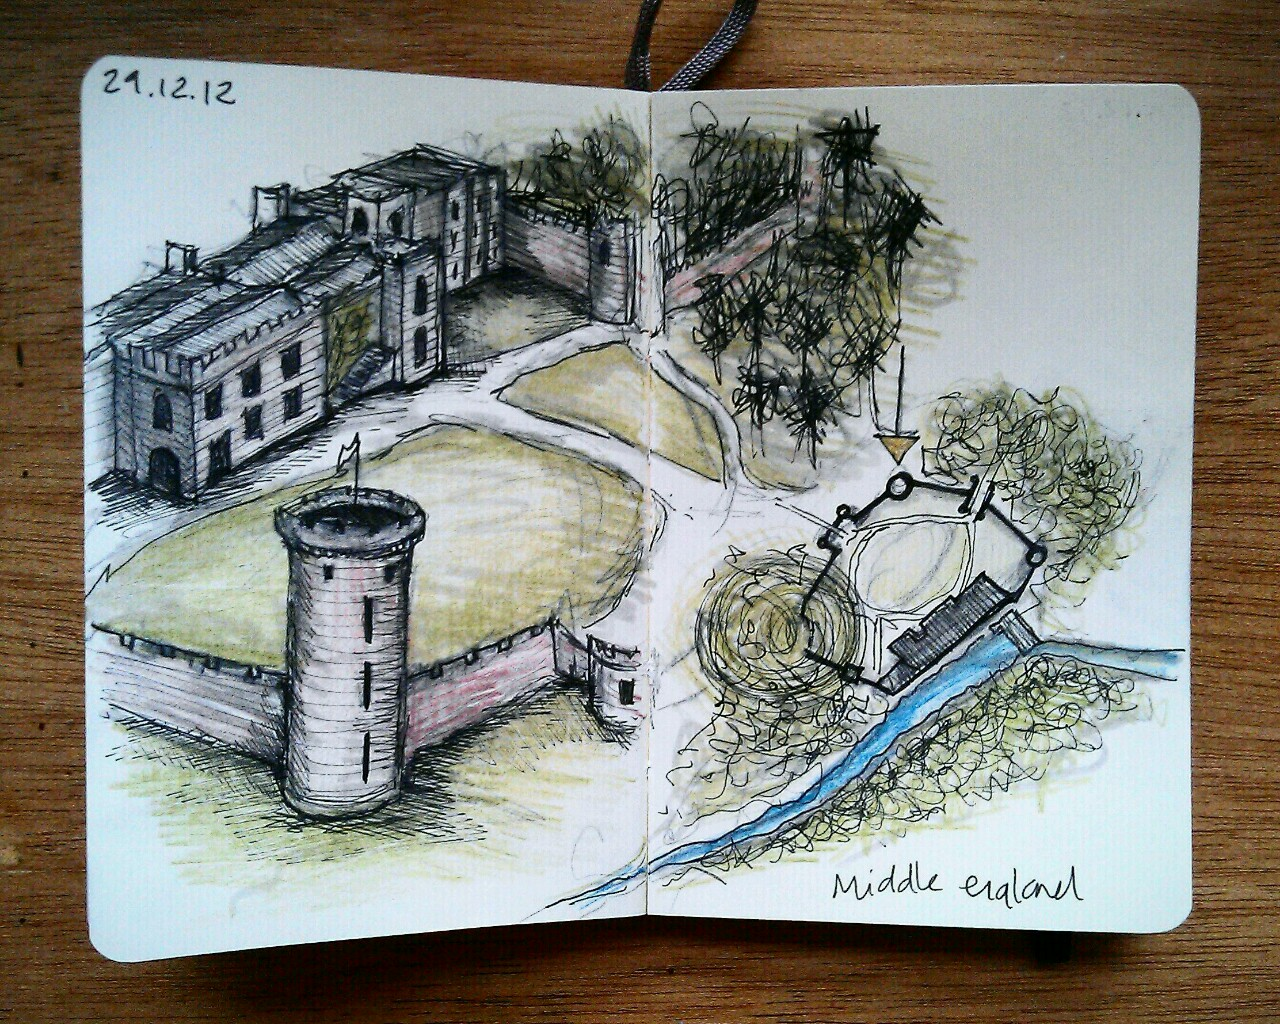 365 drawings later … day 333 … middle england [warwick castle]